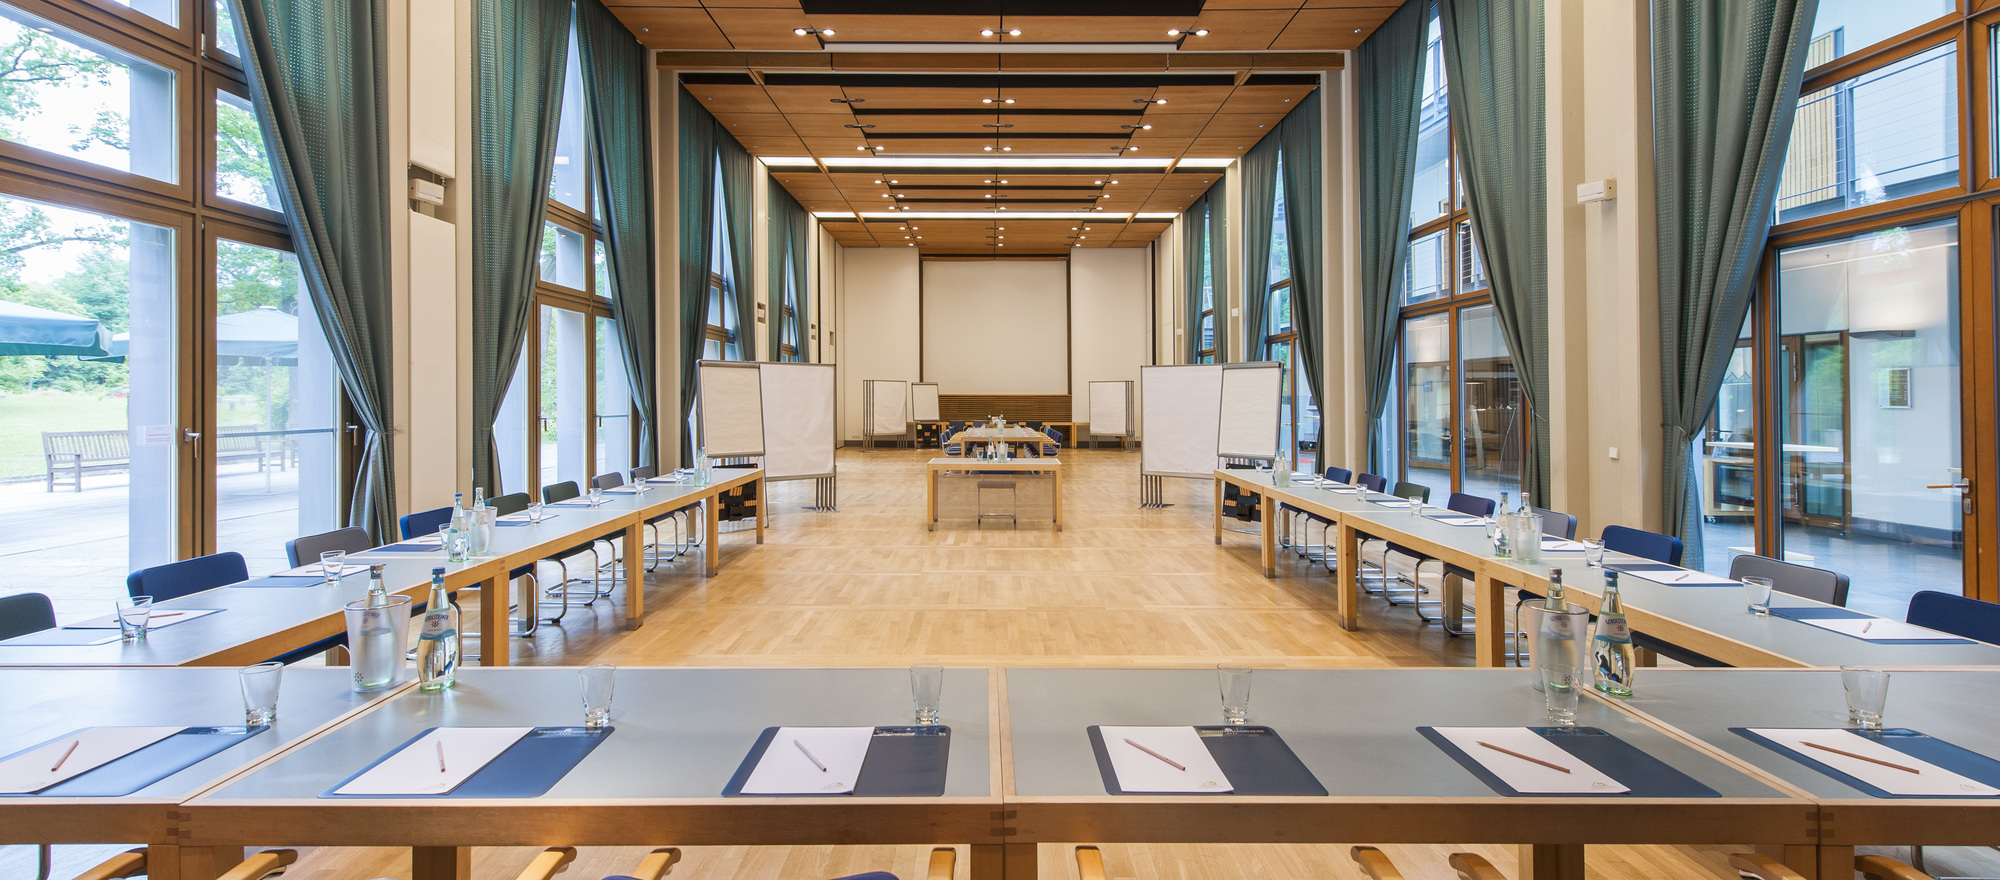 Modern, spacious conference rooms in the Ringhotel Schorfheide | Tagungszentrum der Wirtschaft in Joachimsthal, 4-stars hotel close to Berlin